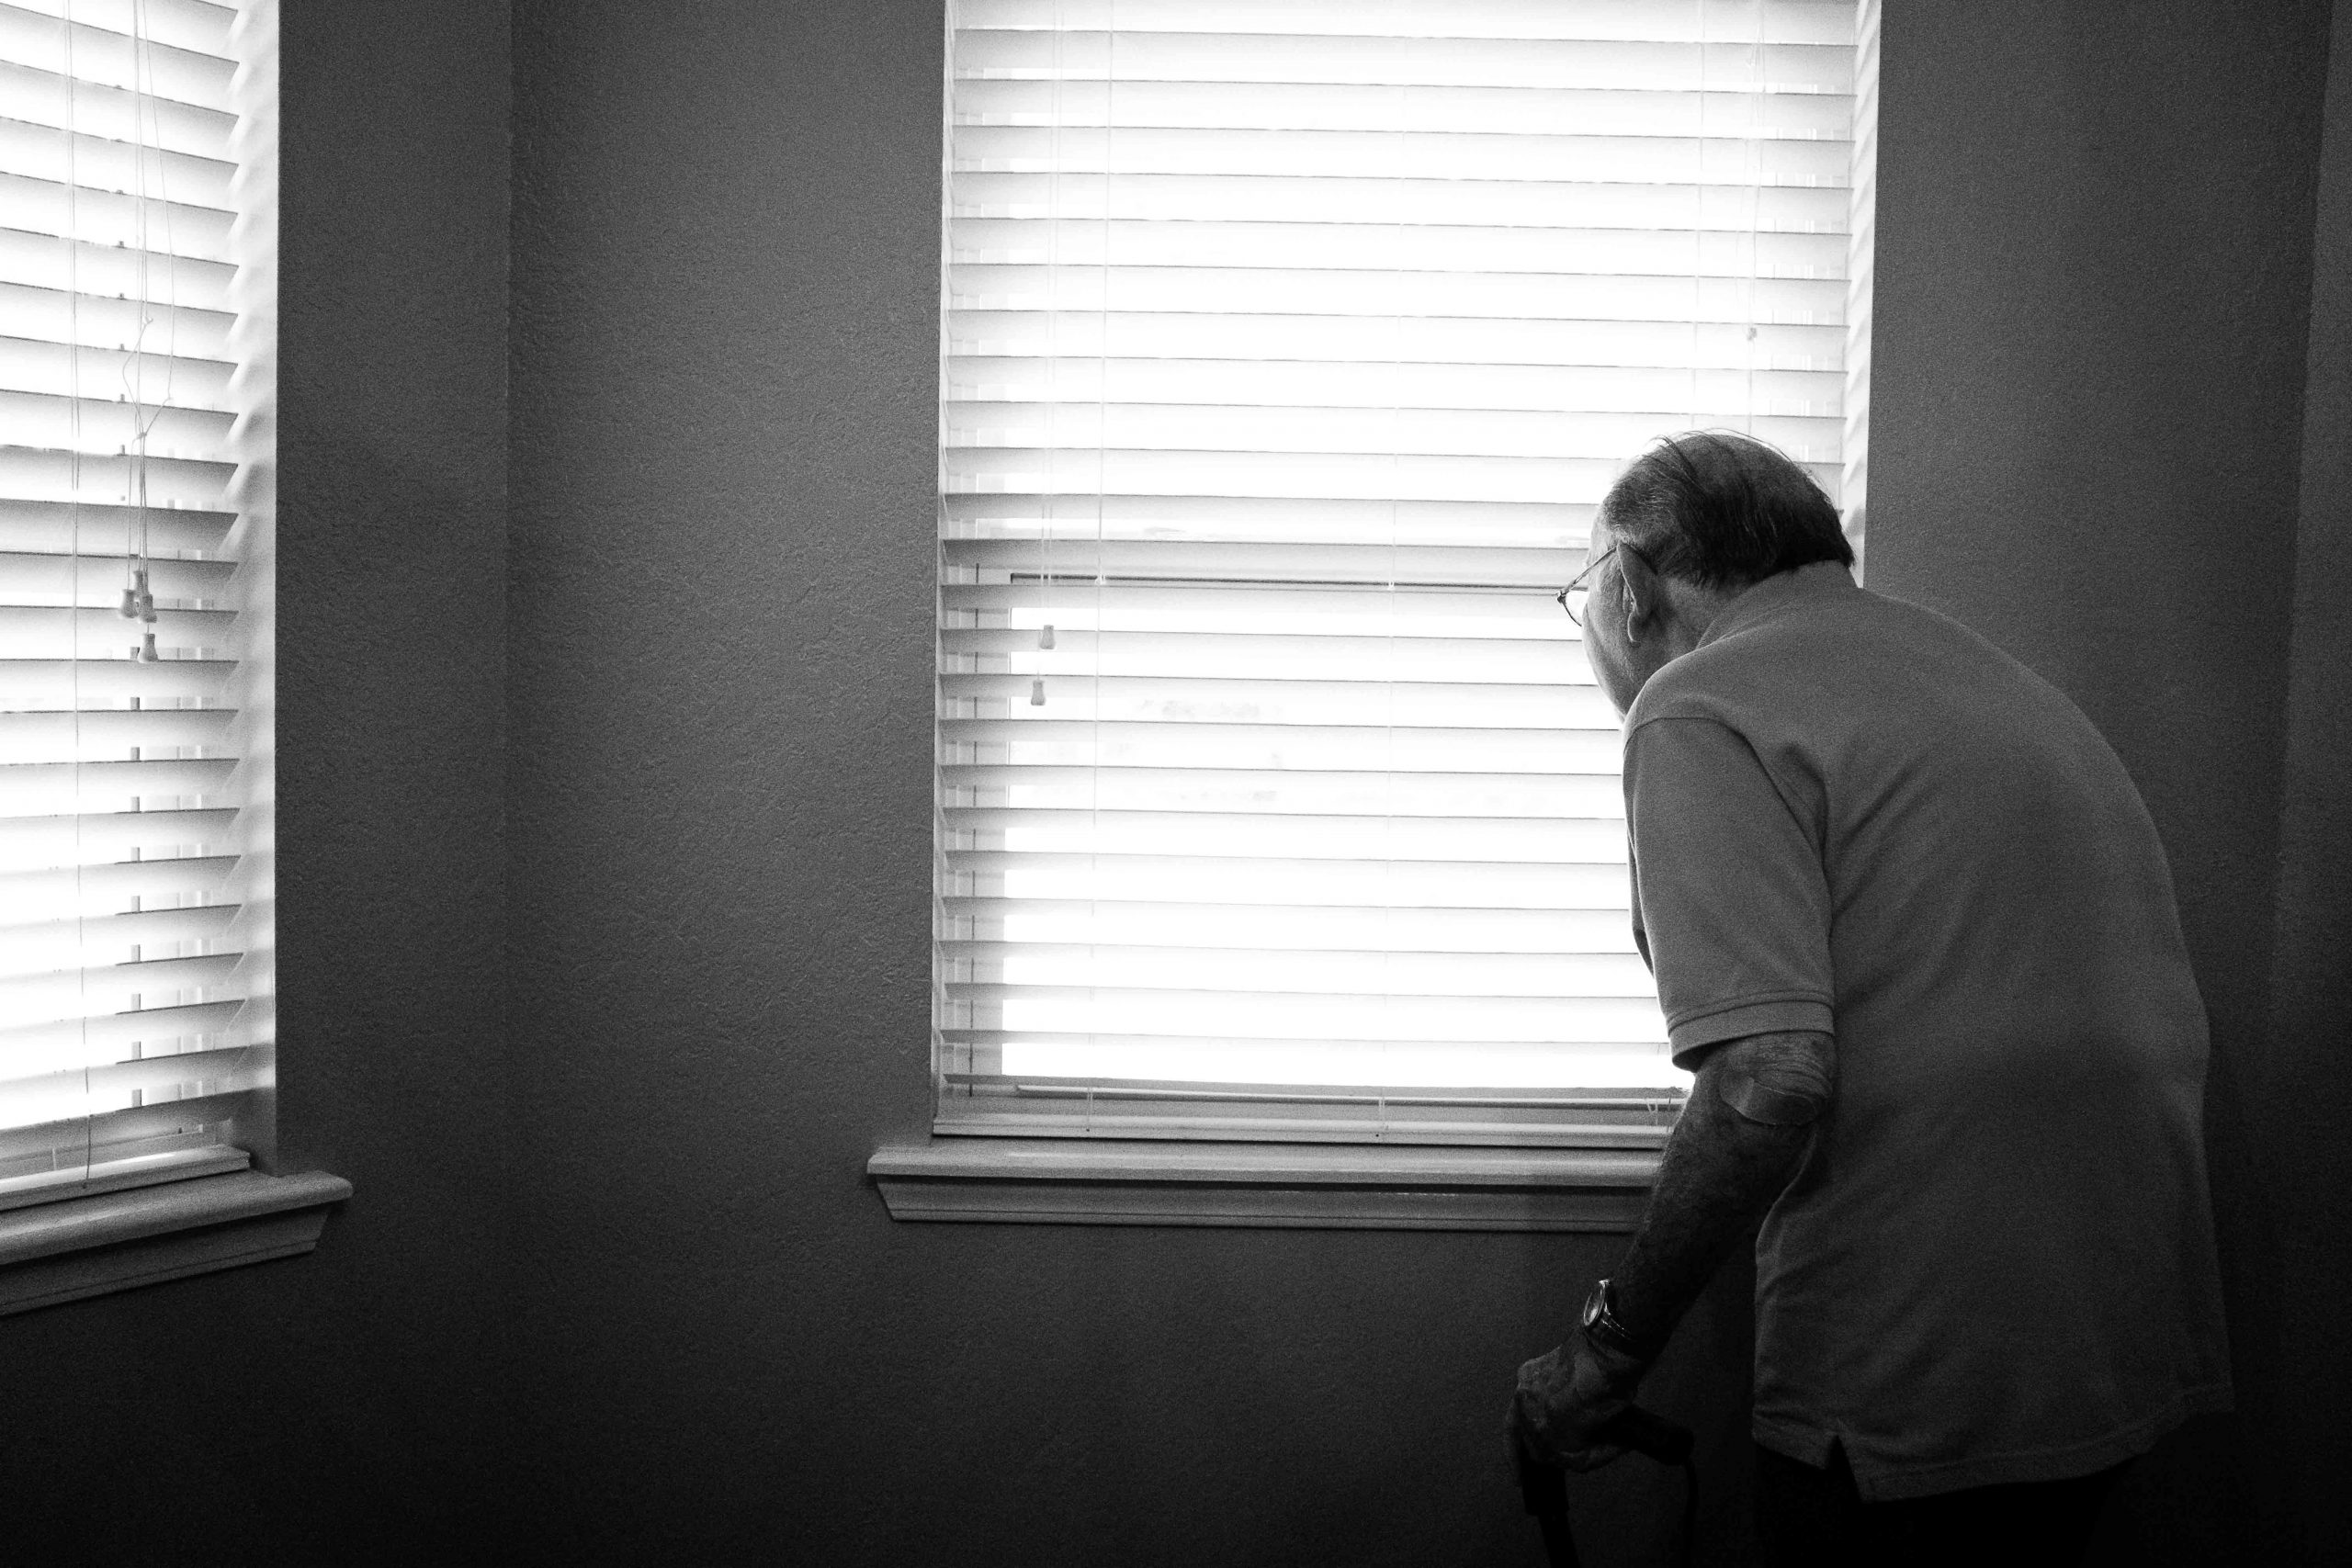 Elderly person looking outside